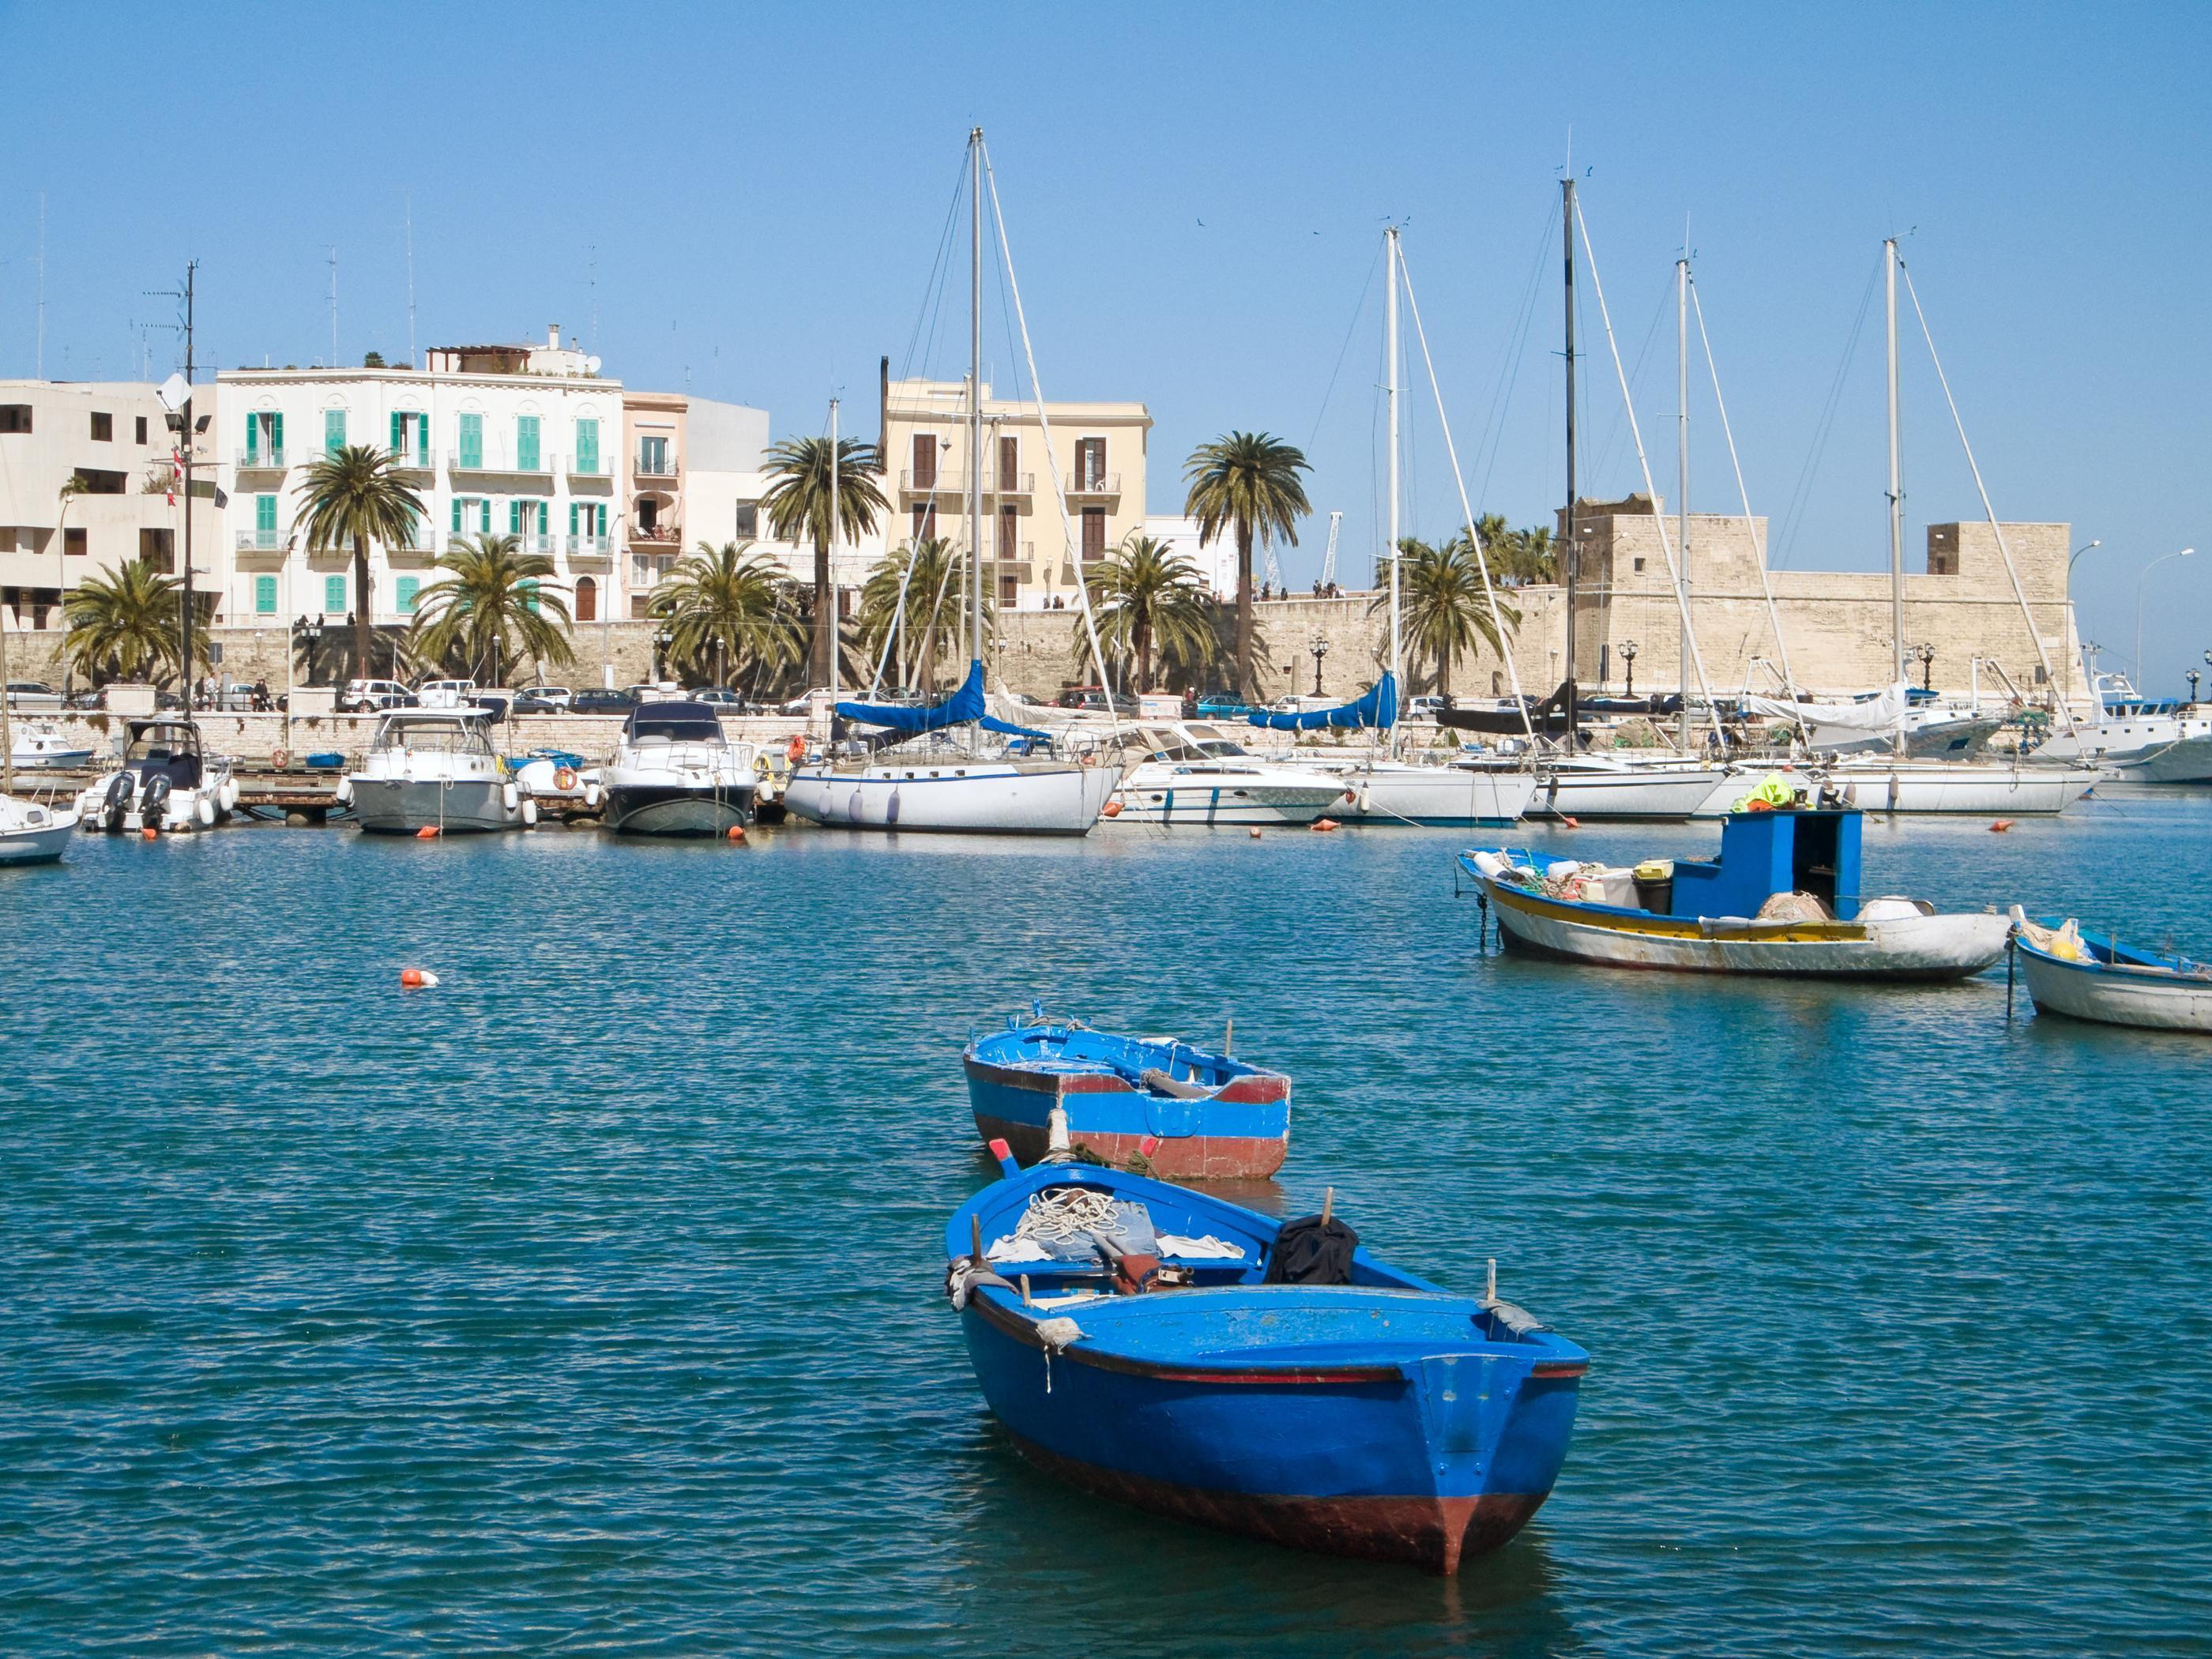 How to Spend 1 Day in Bari